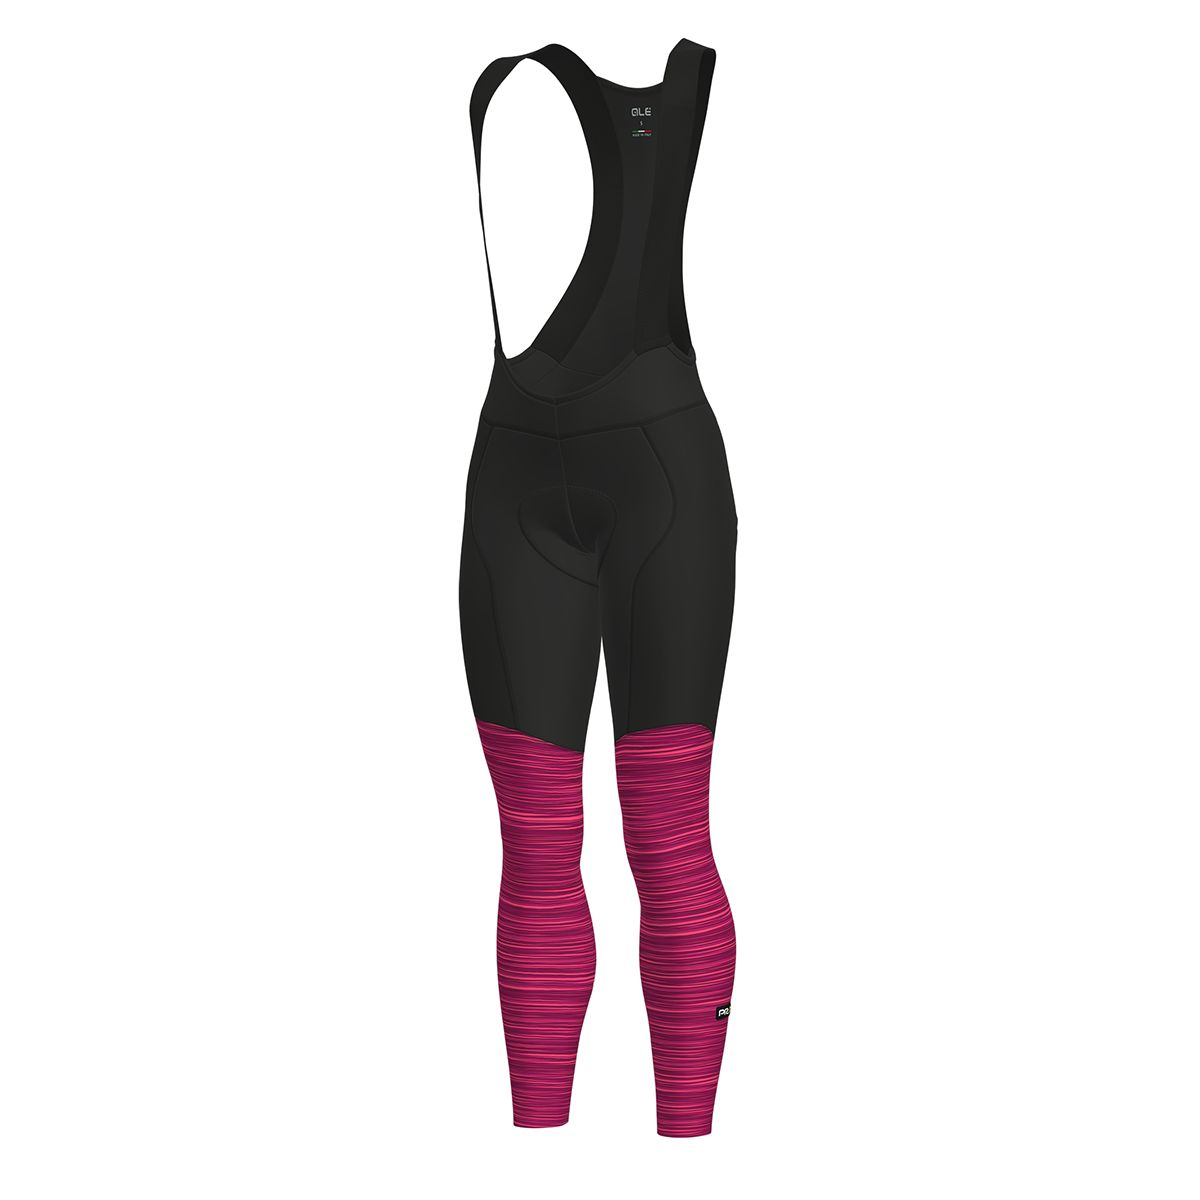 GRAPHICS PRR The End Bibtights for women